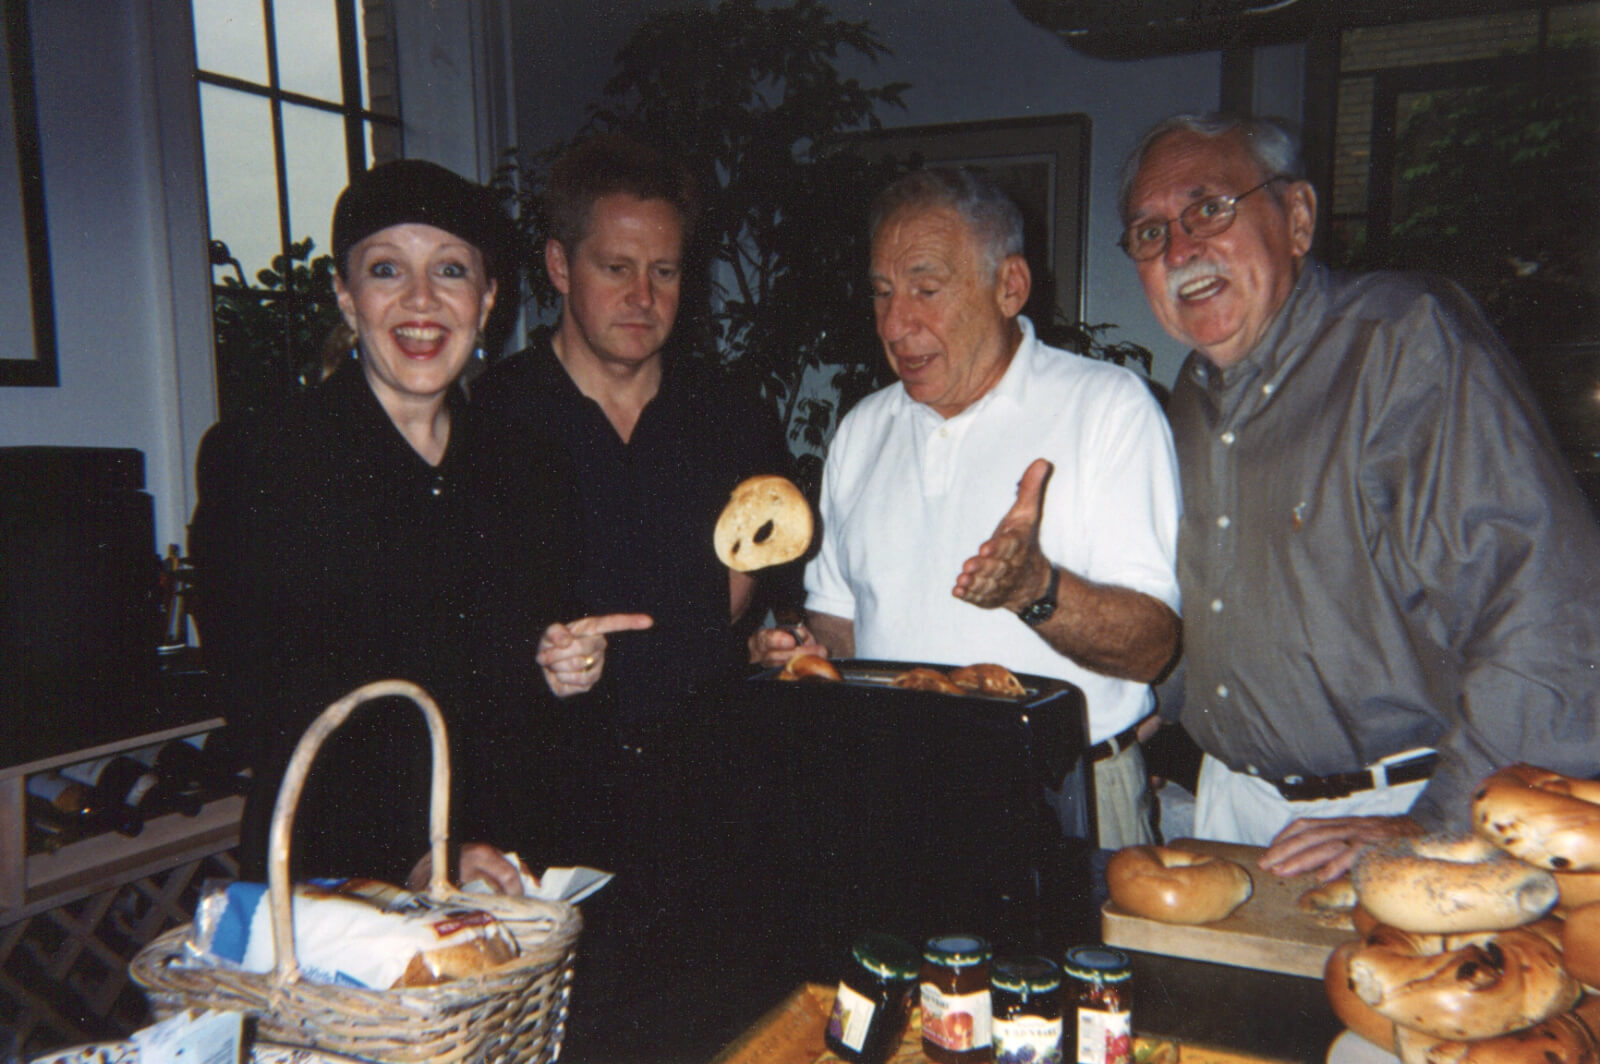 Susan Stroman, Glen Kelly, Mel Brooks, and Thomas Meehan in a creative meeting for The Producers.